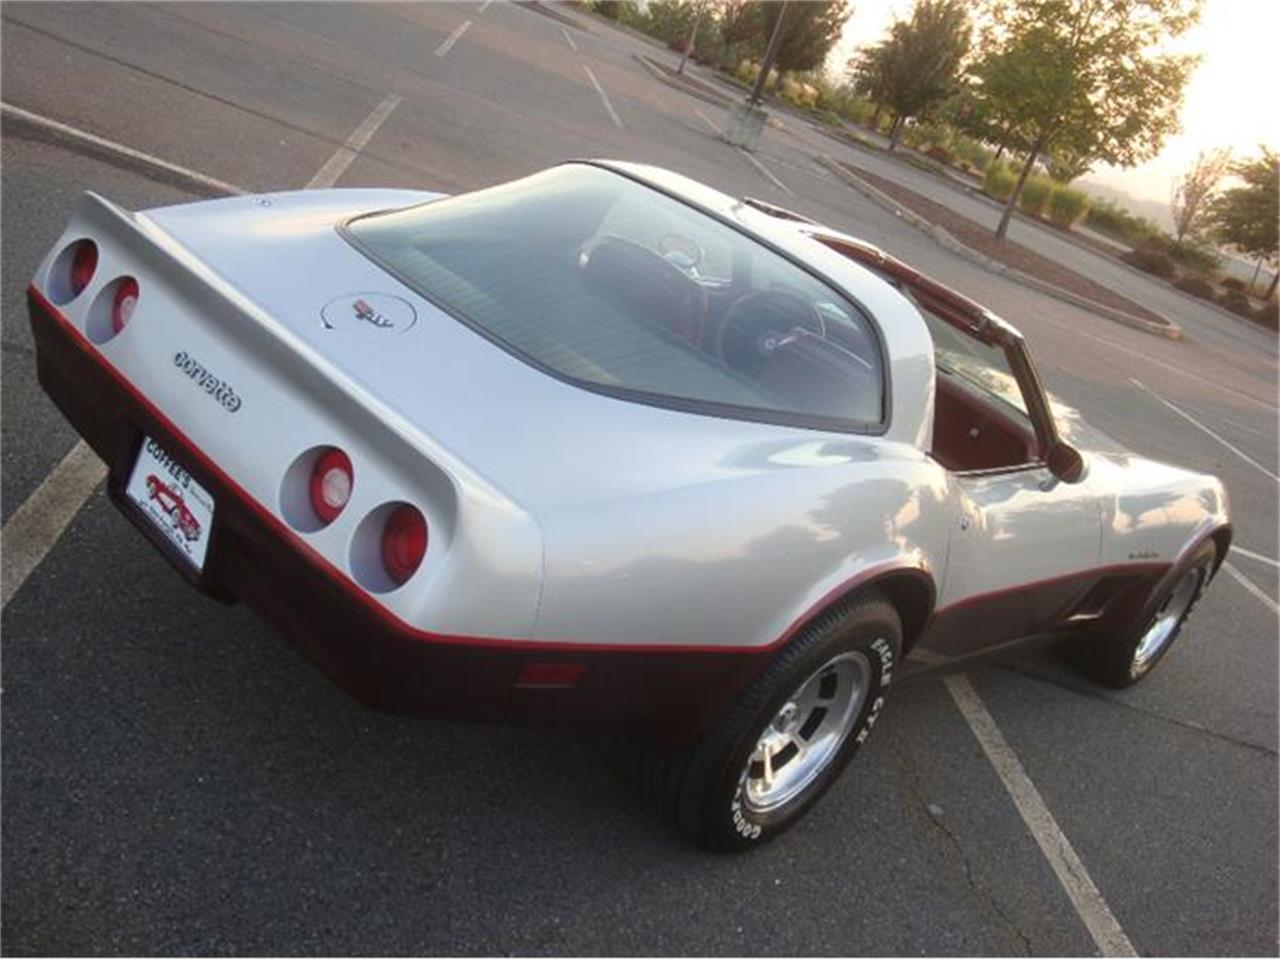 Large Picture of '82 Chevrolet Corvette located in Old Forge Pennsylvania - $29,900.00 - DL5R